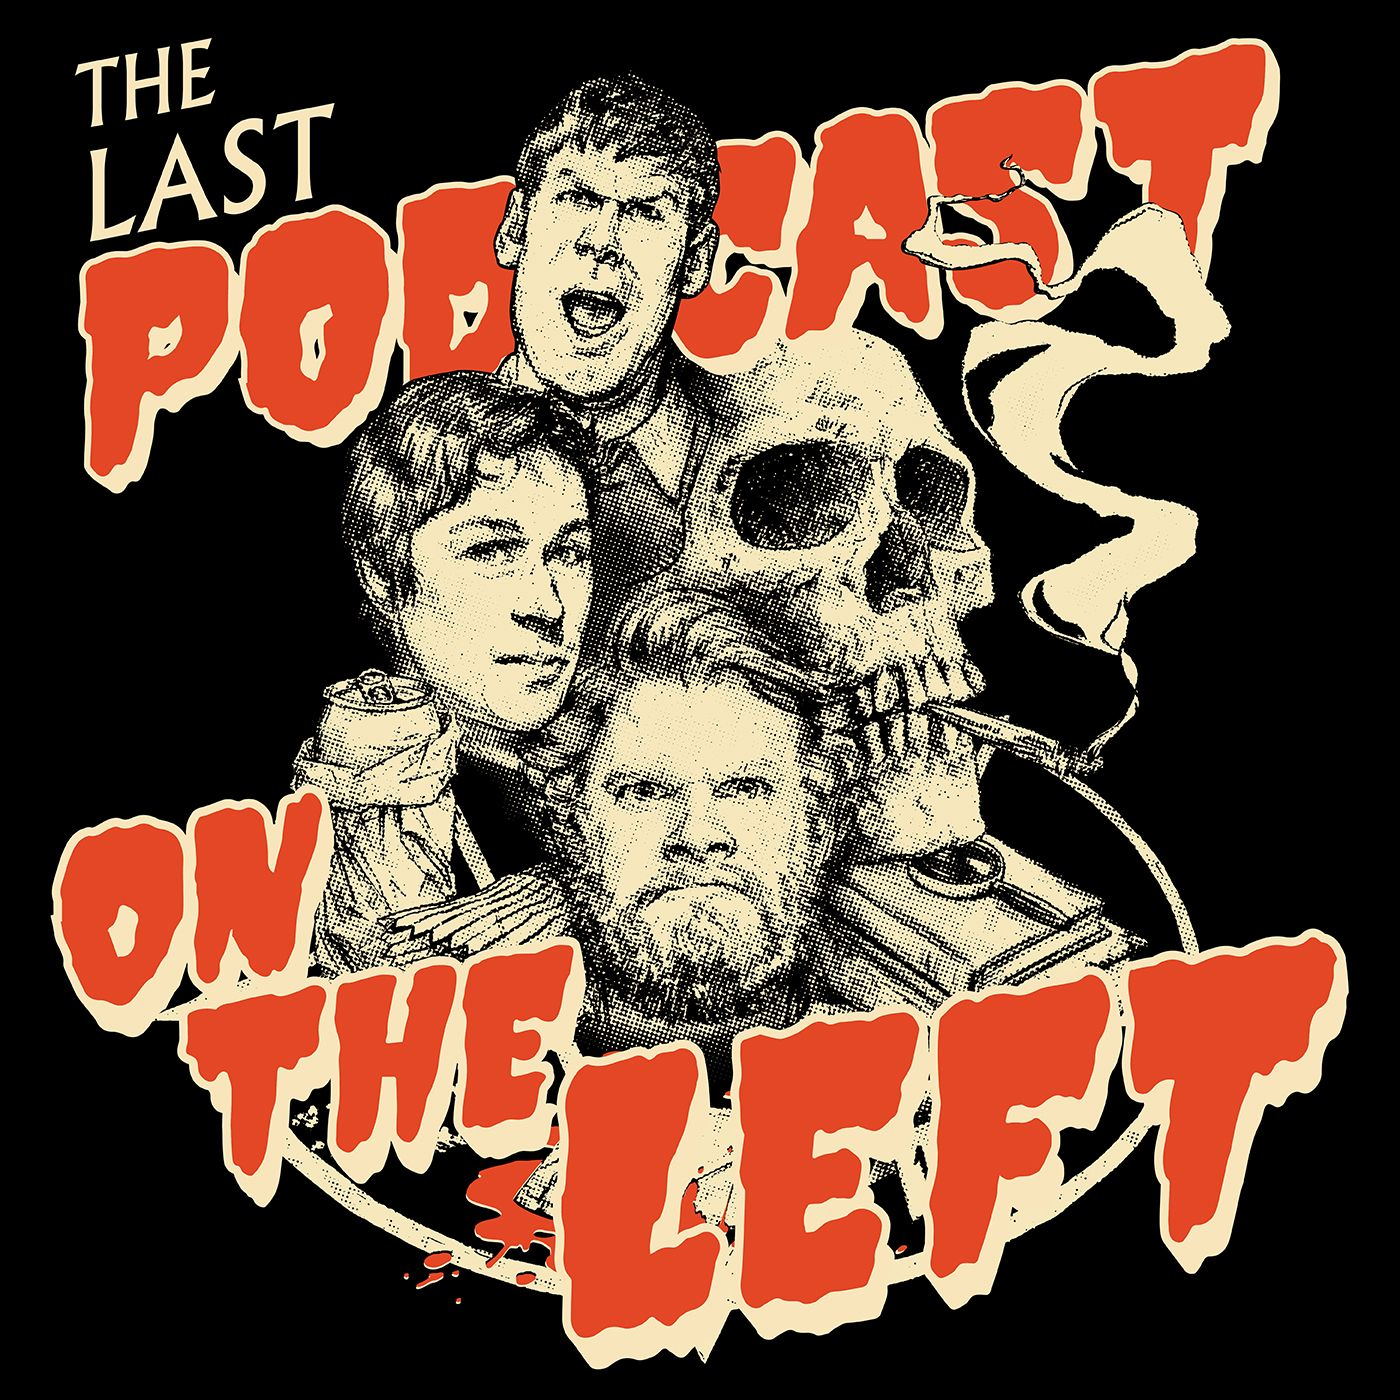 CAVE COMEDY RADIO Presents Last Podcast On The Left featuring Ben Kissel, Marcus Parks & Henry Zebrowski